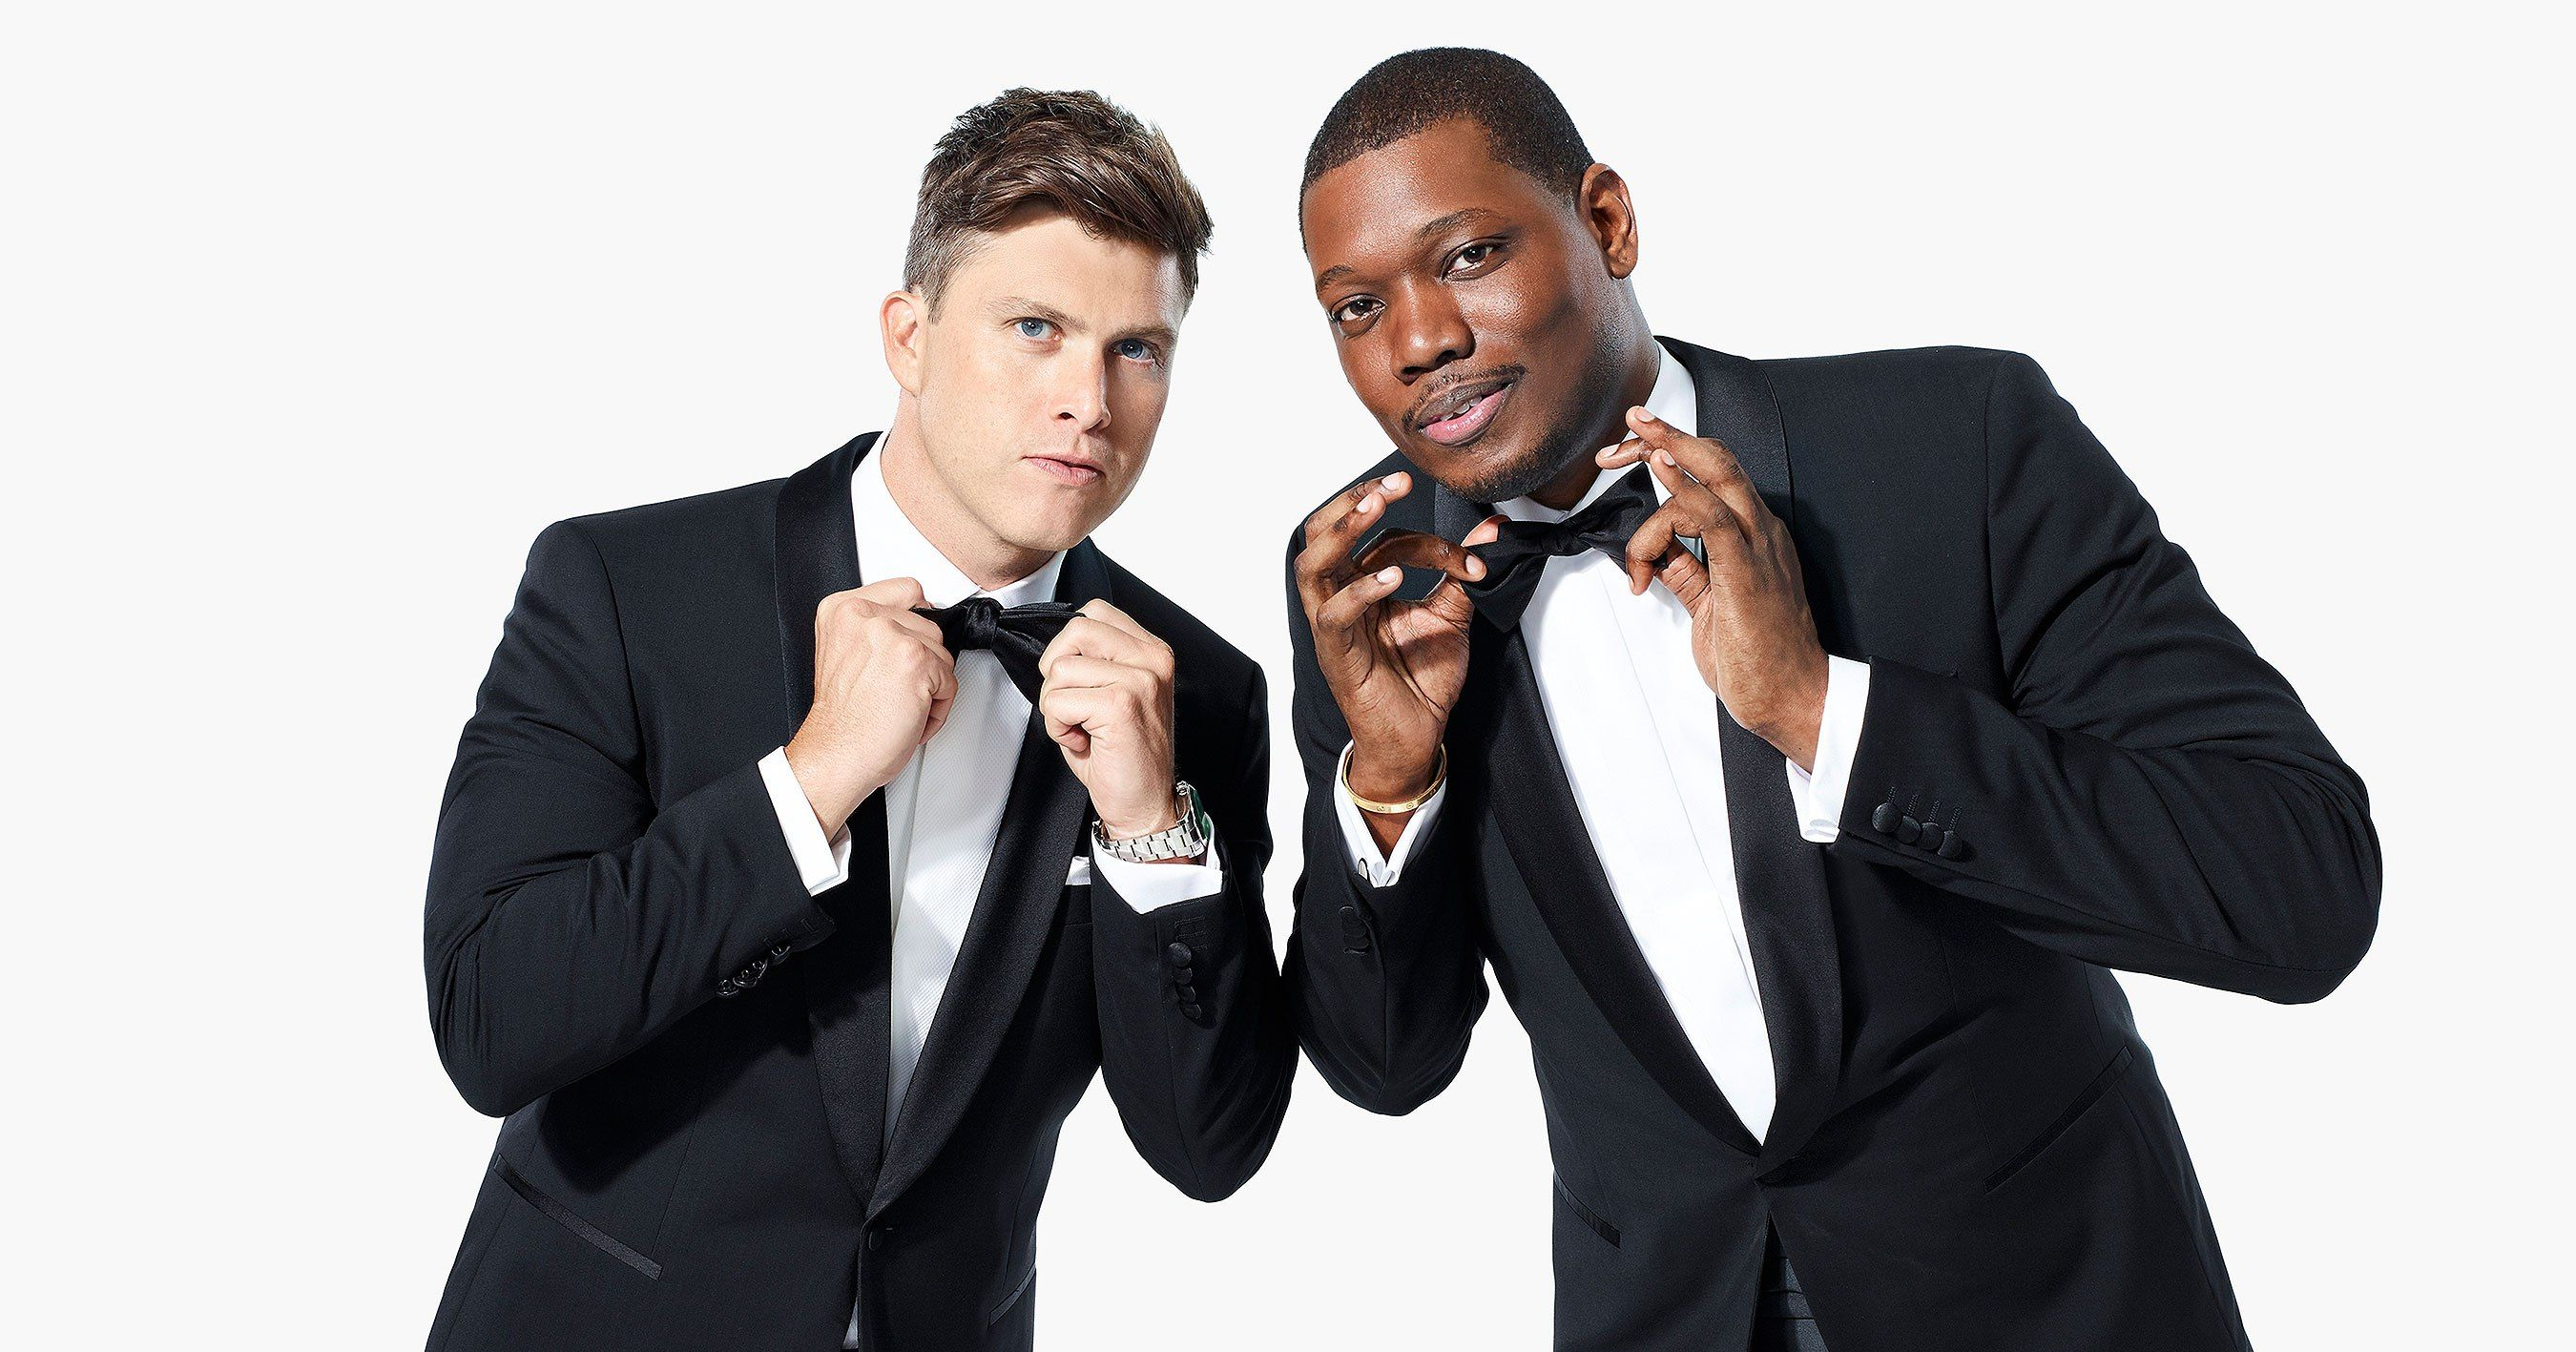 Colin jost jokes that the emmys will feature two long sean